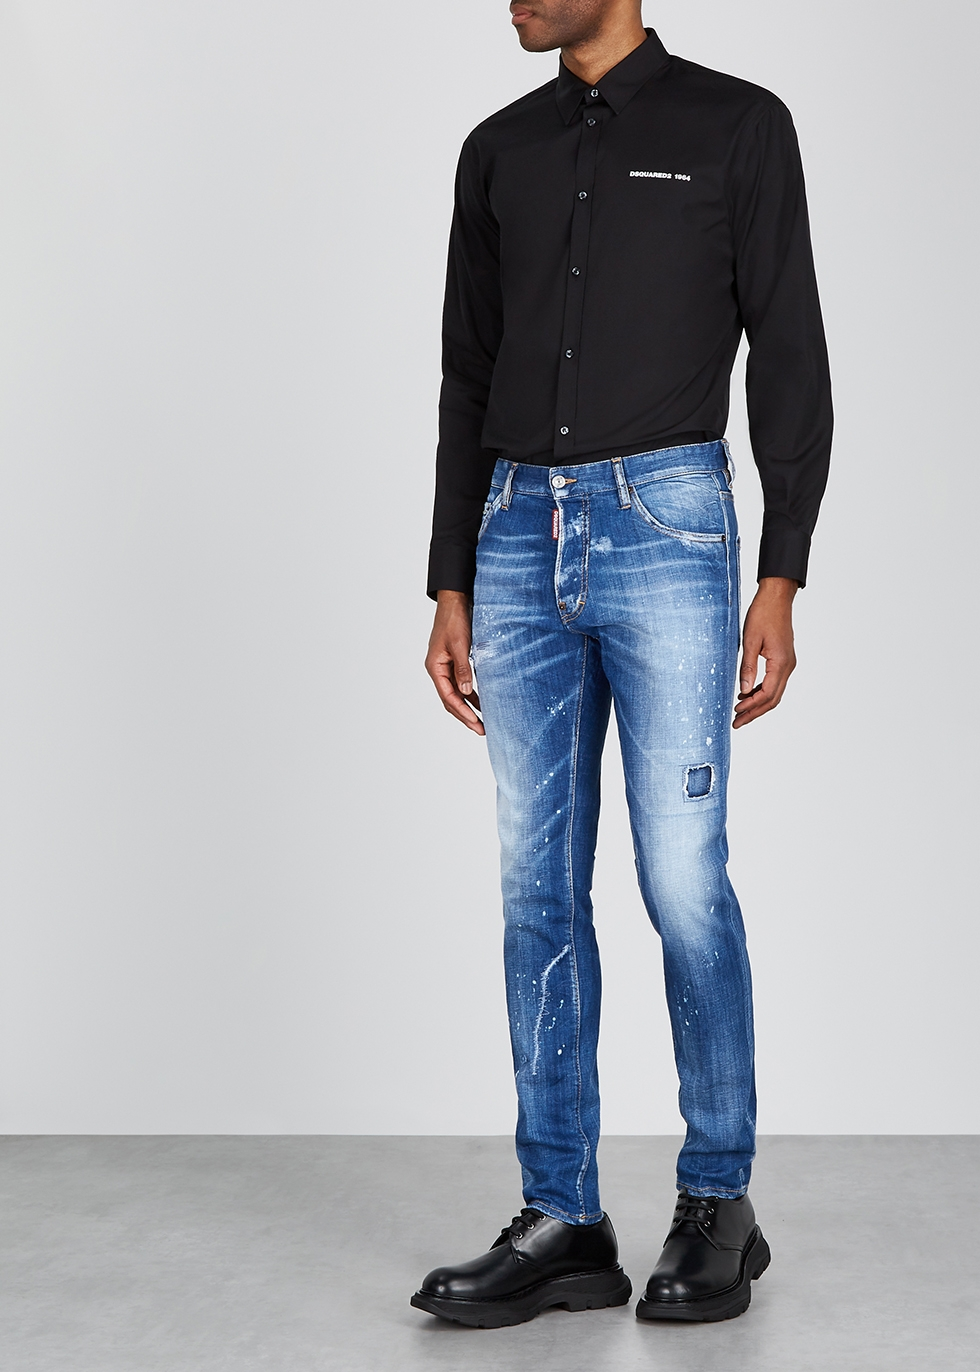 The best men's jeans for the spring-summer season. We choose in accordance with the latest fashion trends